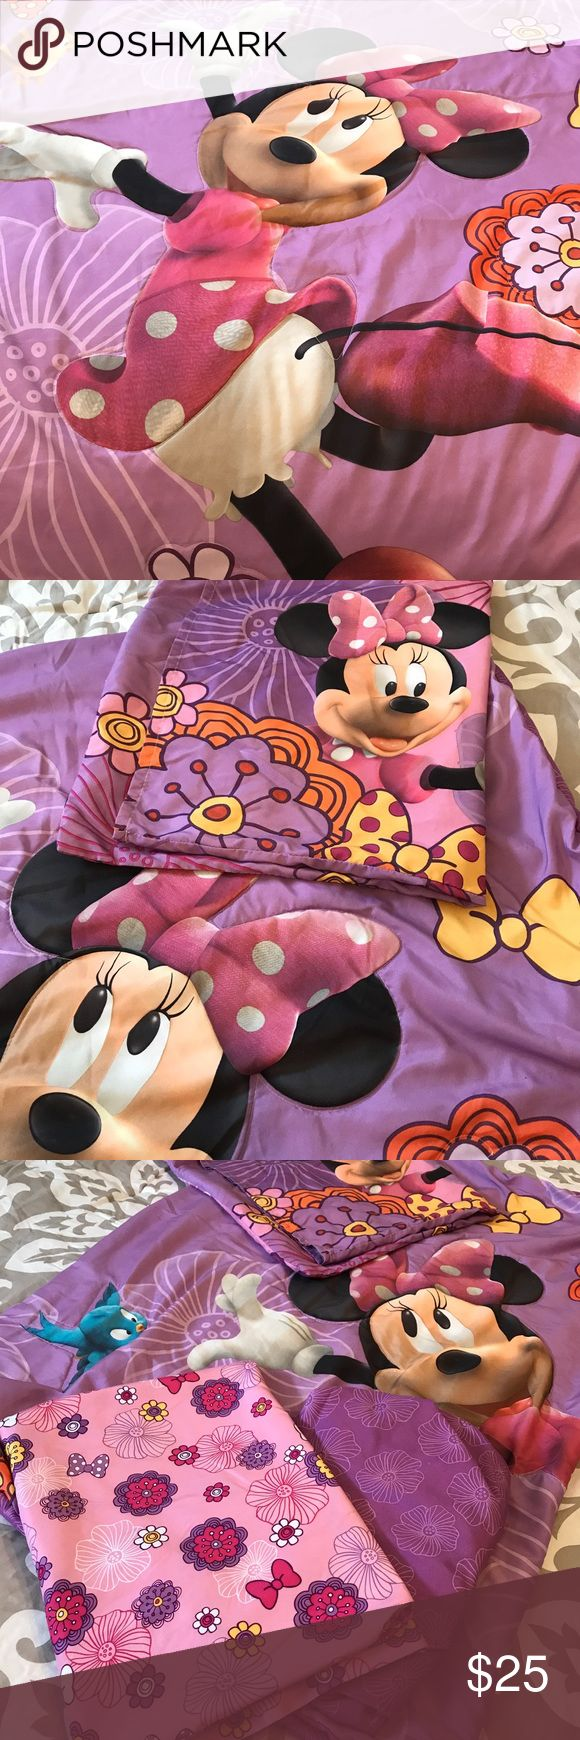 Toddler girl bedding set, Minnie Mouse 4 piece toddler girl bedding set. Includes: comforter, fitted sheet, top sheet, and pillow case. Fits standard toddler bed/crib mattress. Other